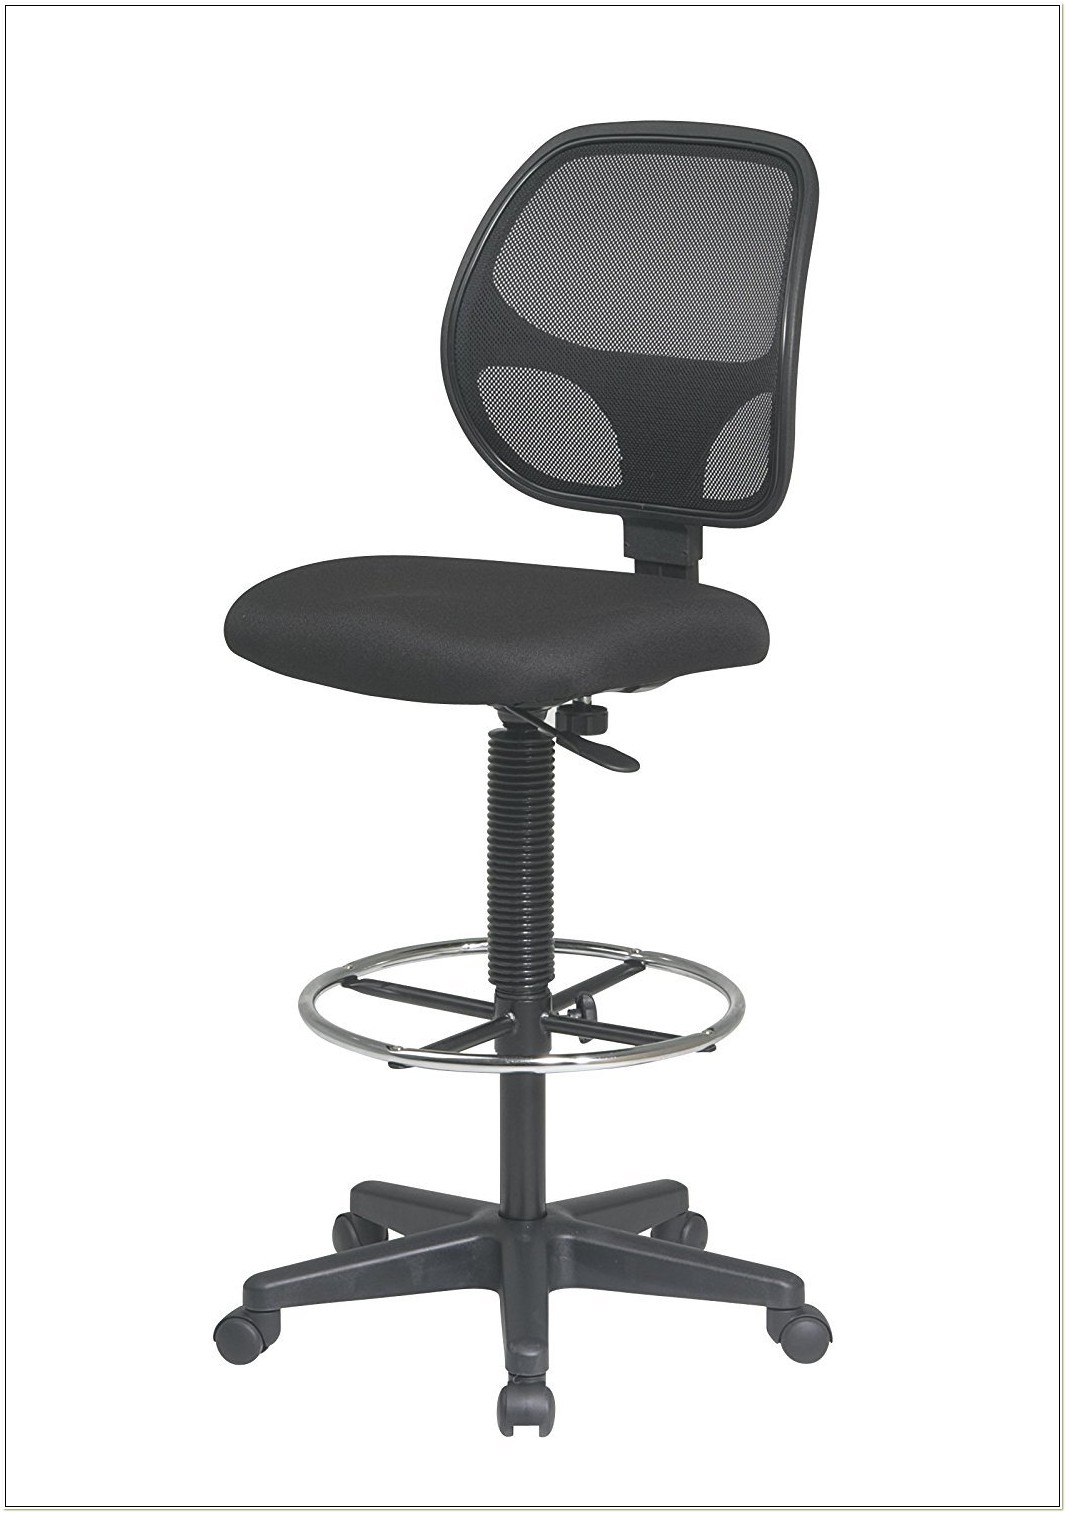 Office Star Ergo Drafting Chair Black